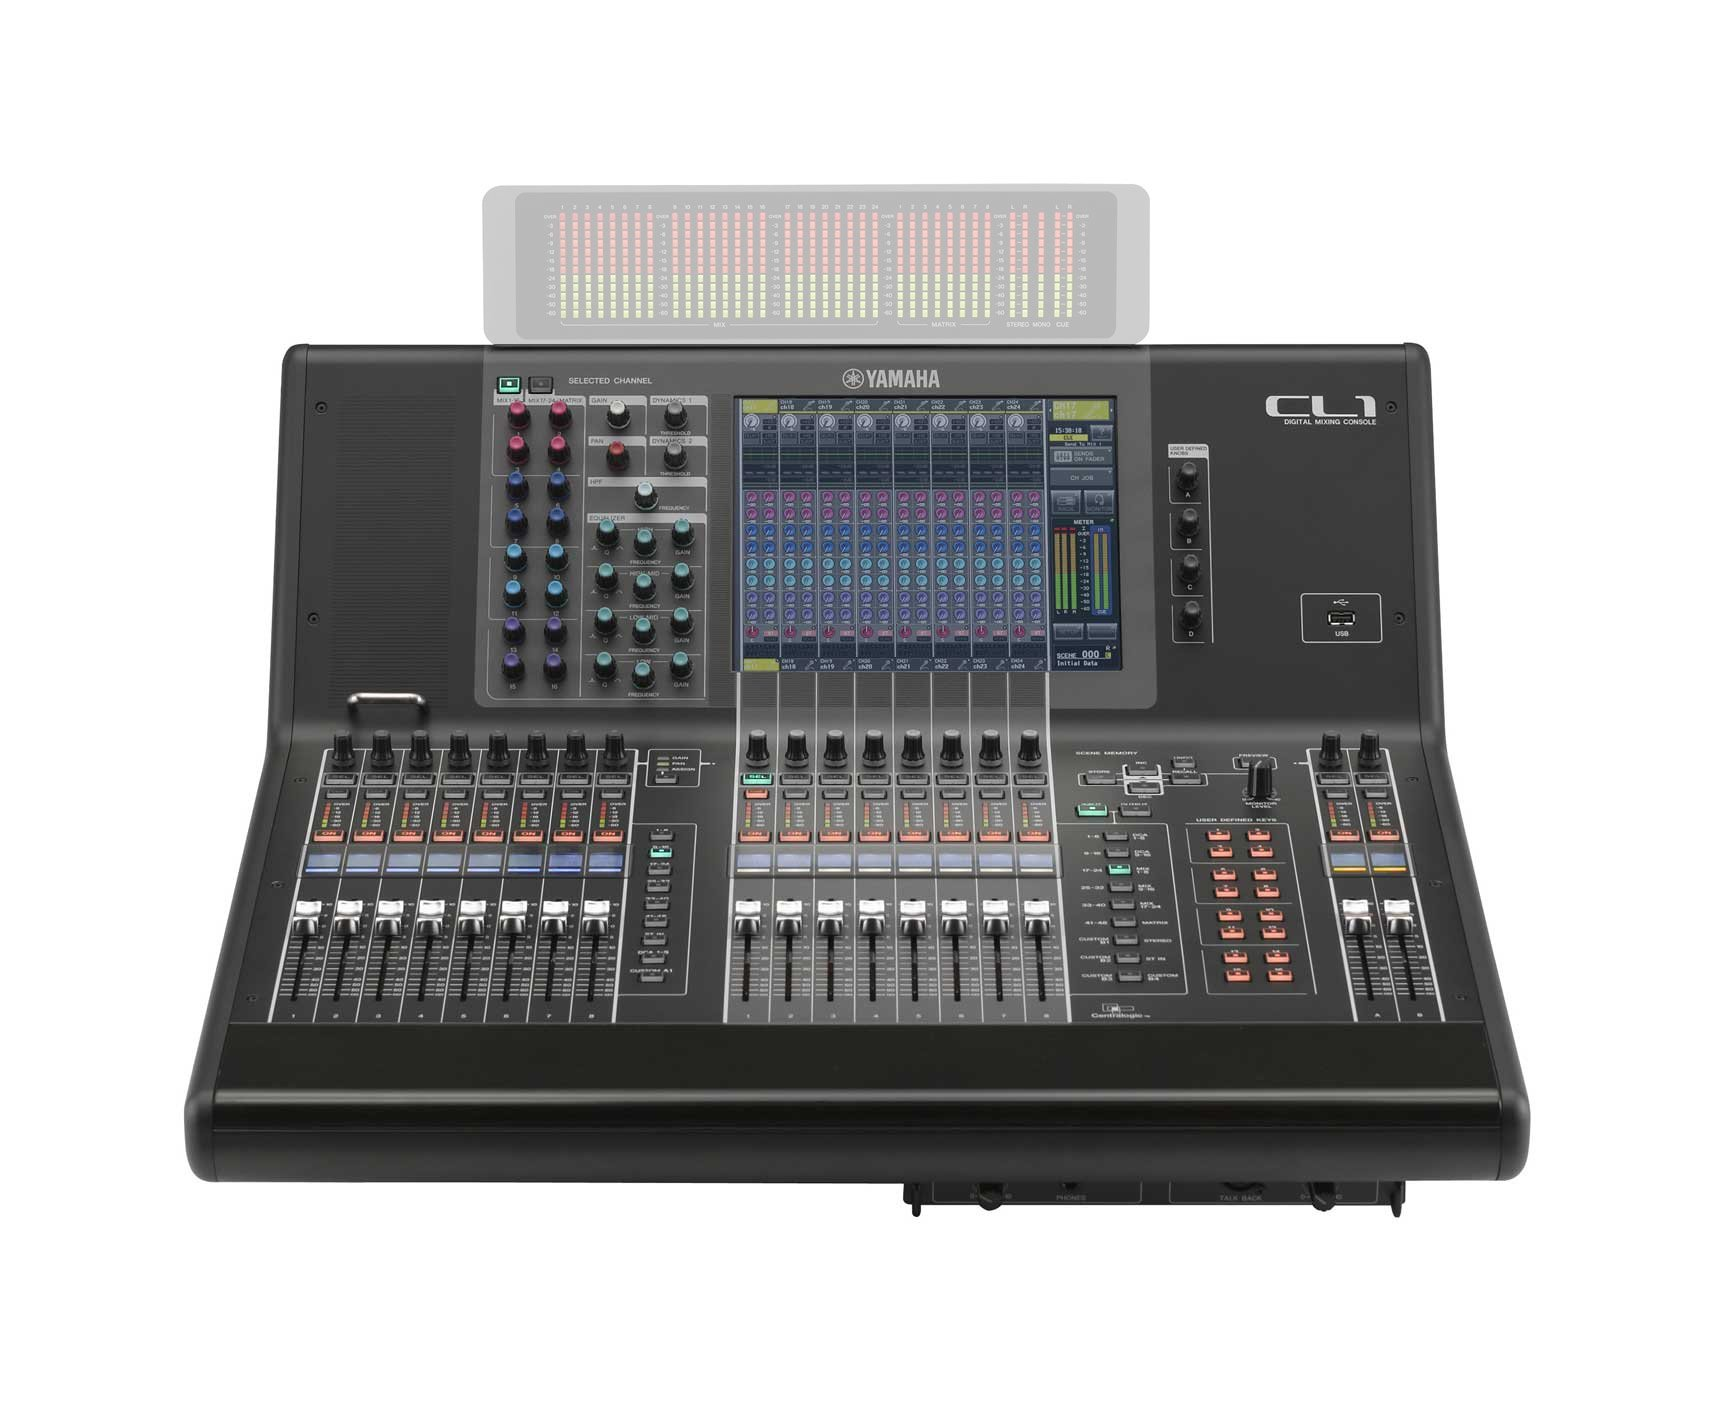 Yamaha CL1 16-Fader Digital Mixer Console | Full Compass Systems